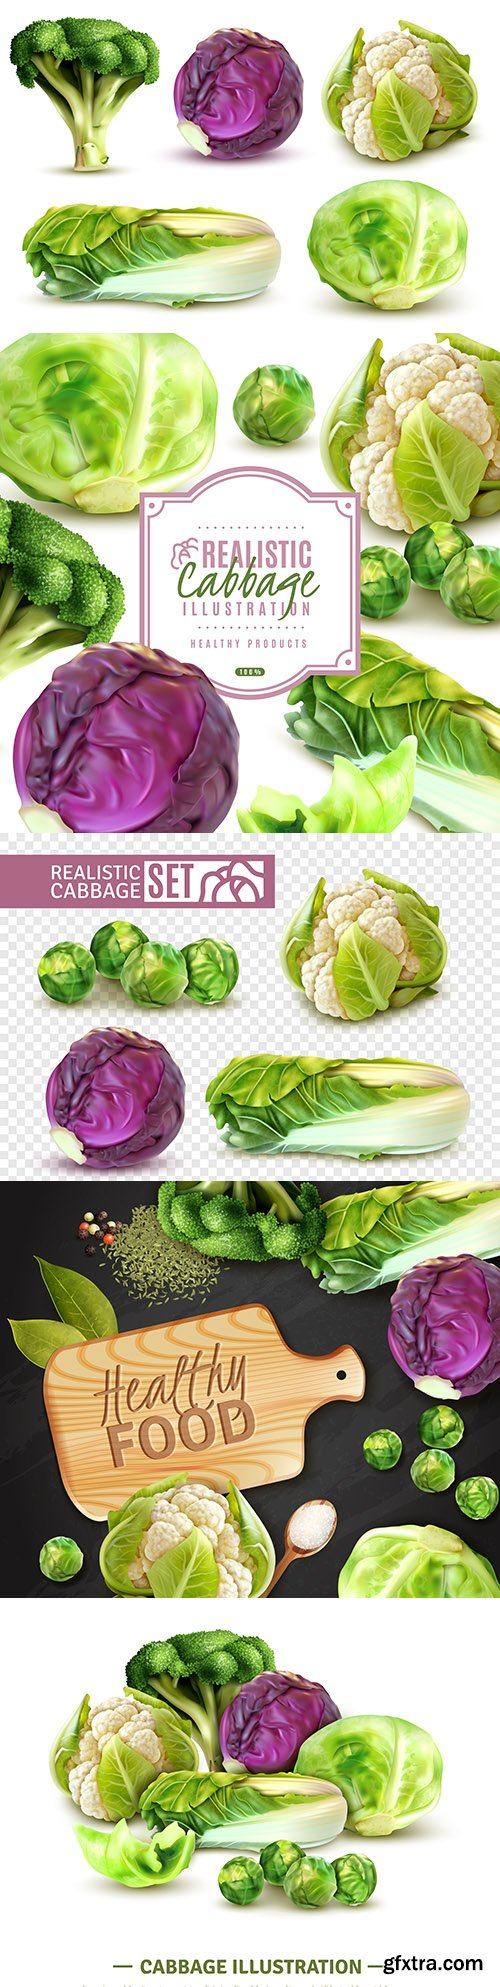 Brussels, Chinese and cauliflower realistic set illustrations